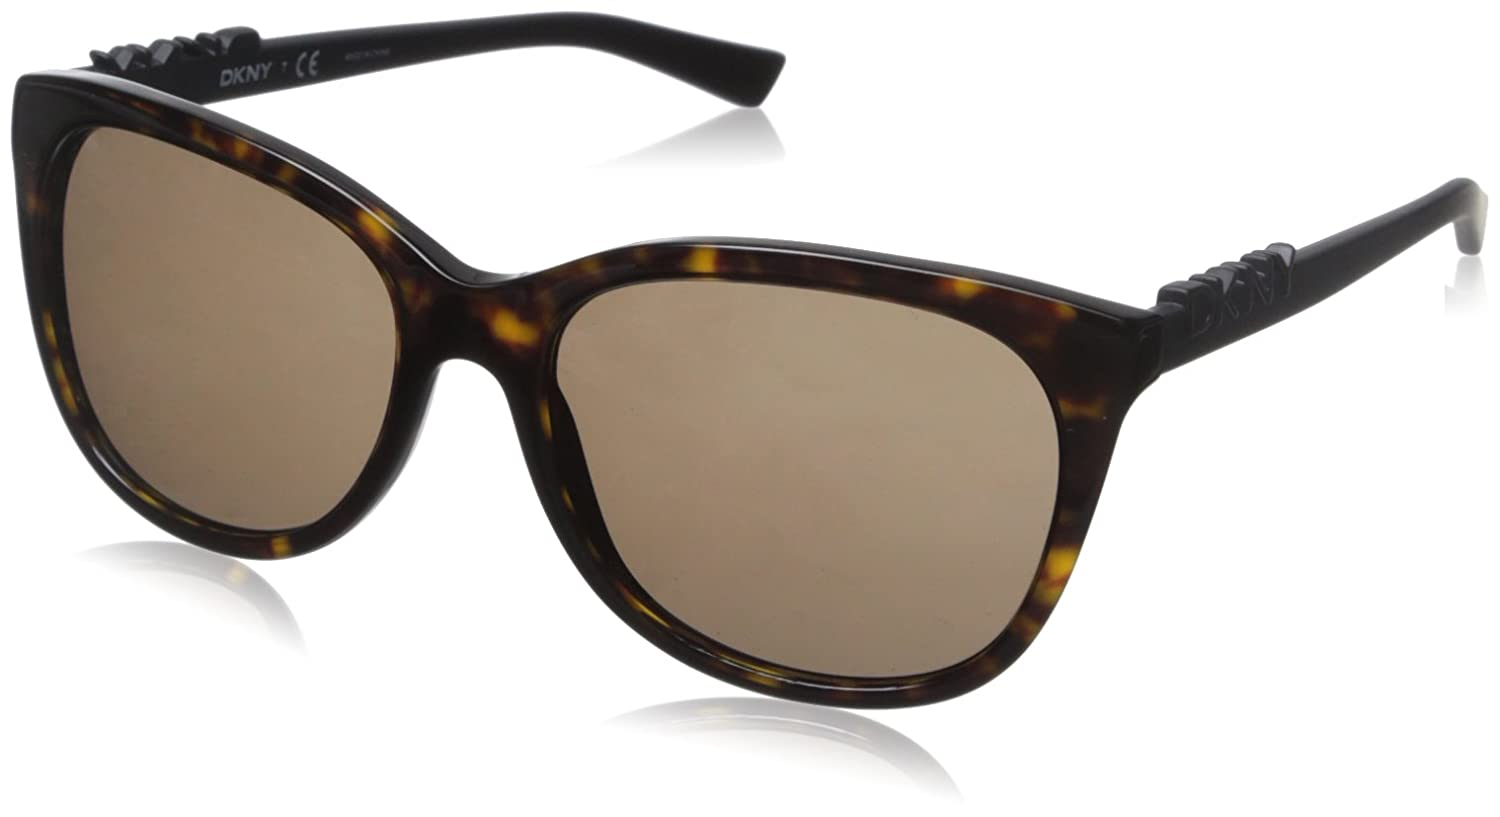 8f73ea4074a1 Amazon.com: DKNY Women's 0dy4126 Square, Rule/Brown Transparent, 57 mm:  Clothing